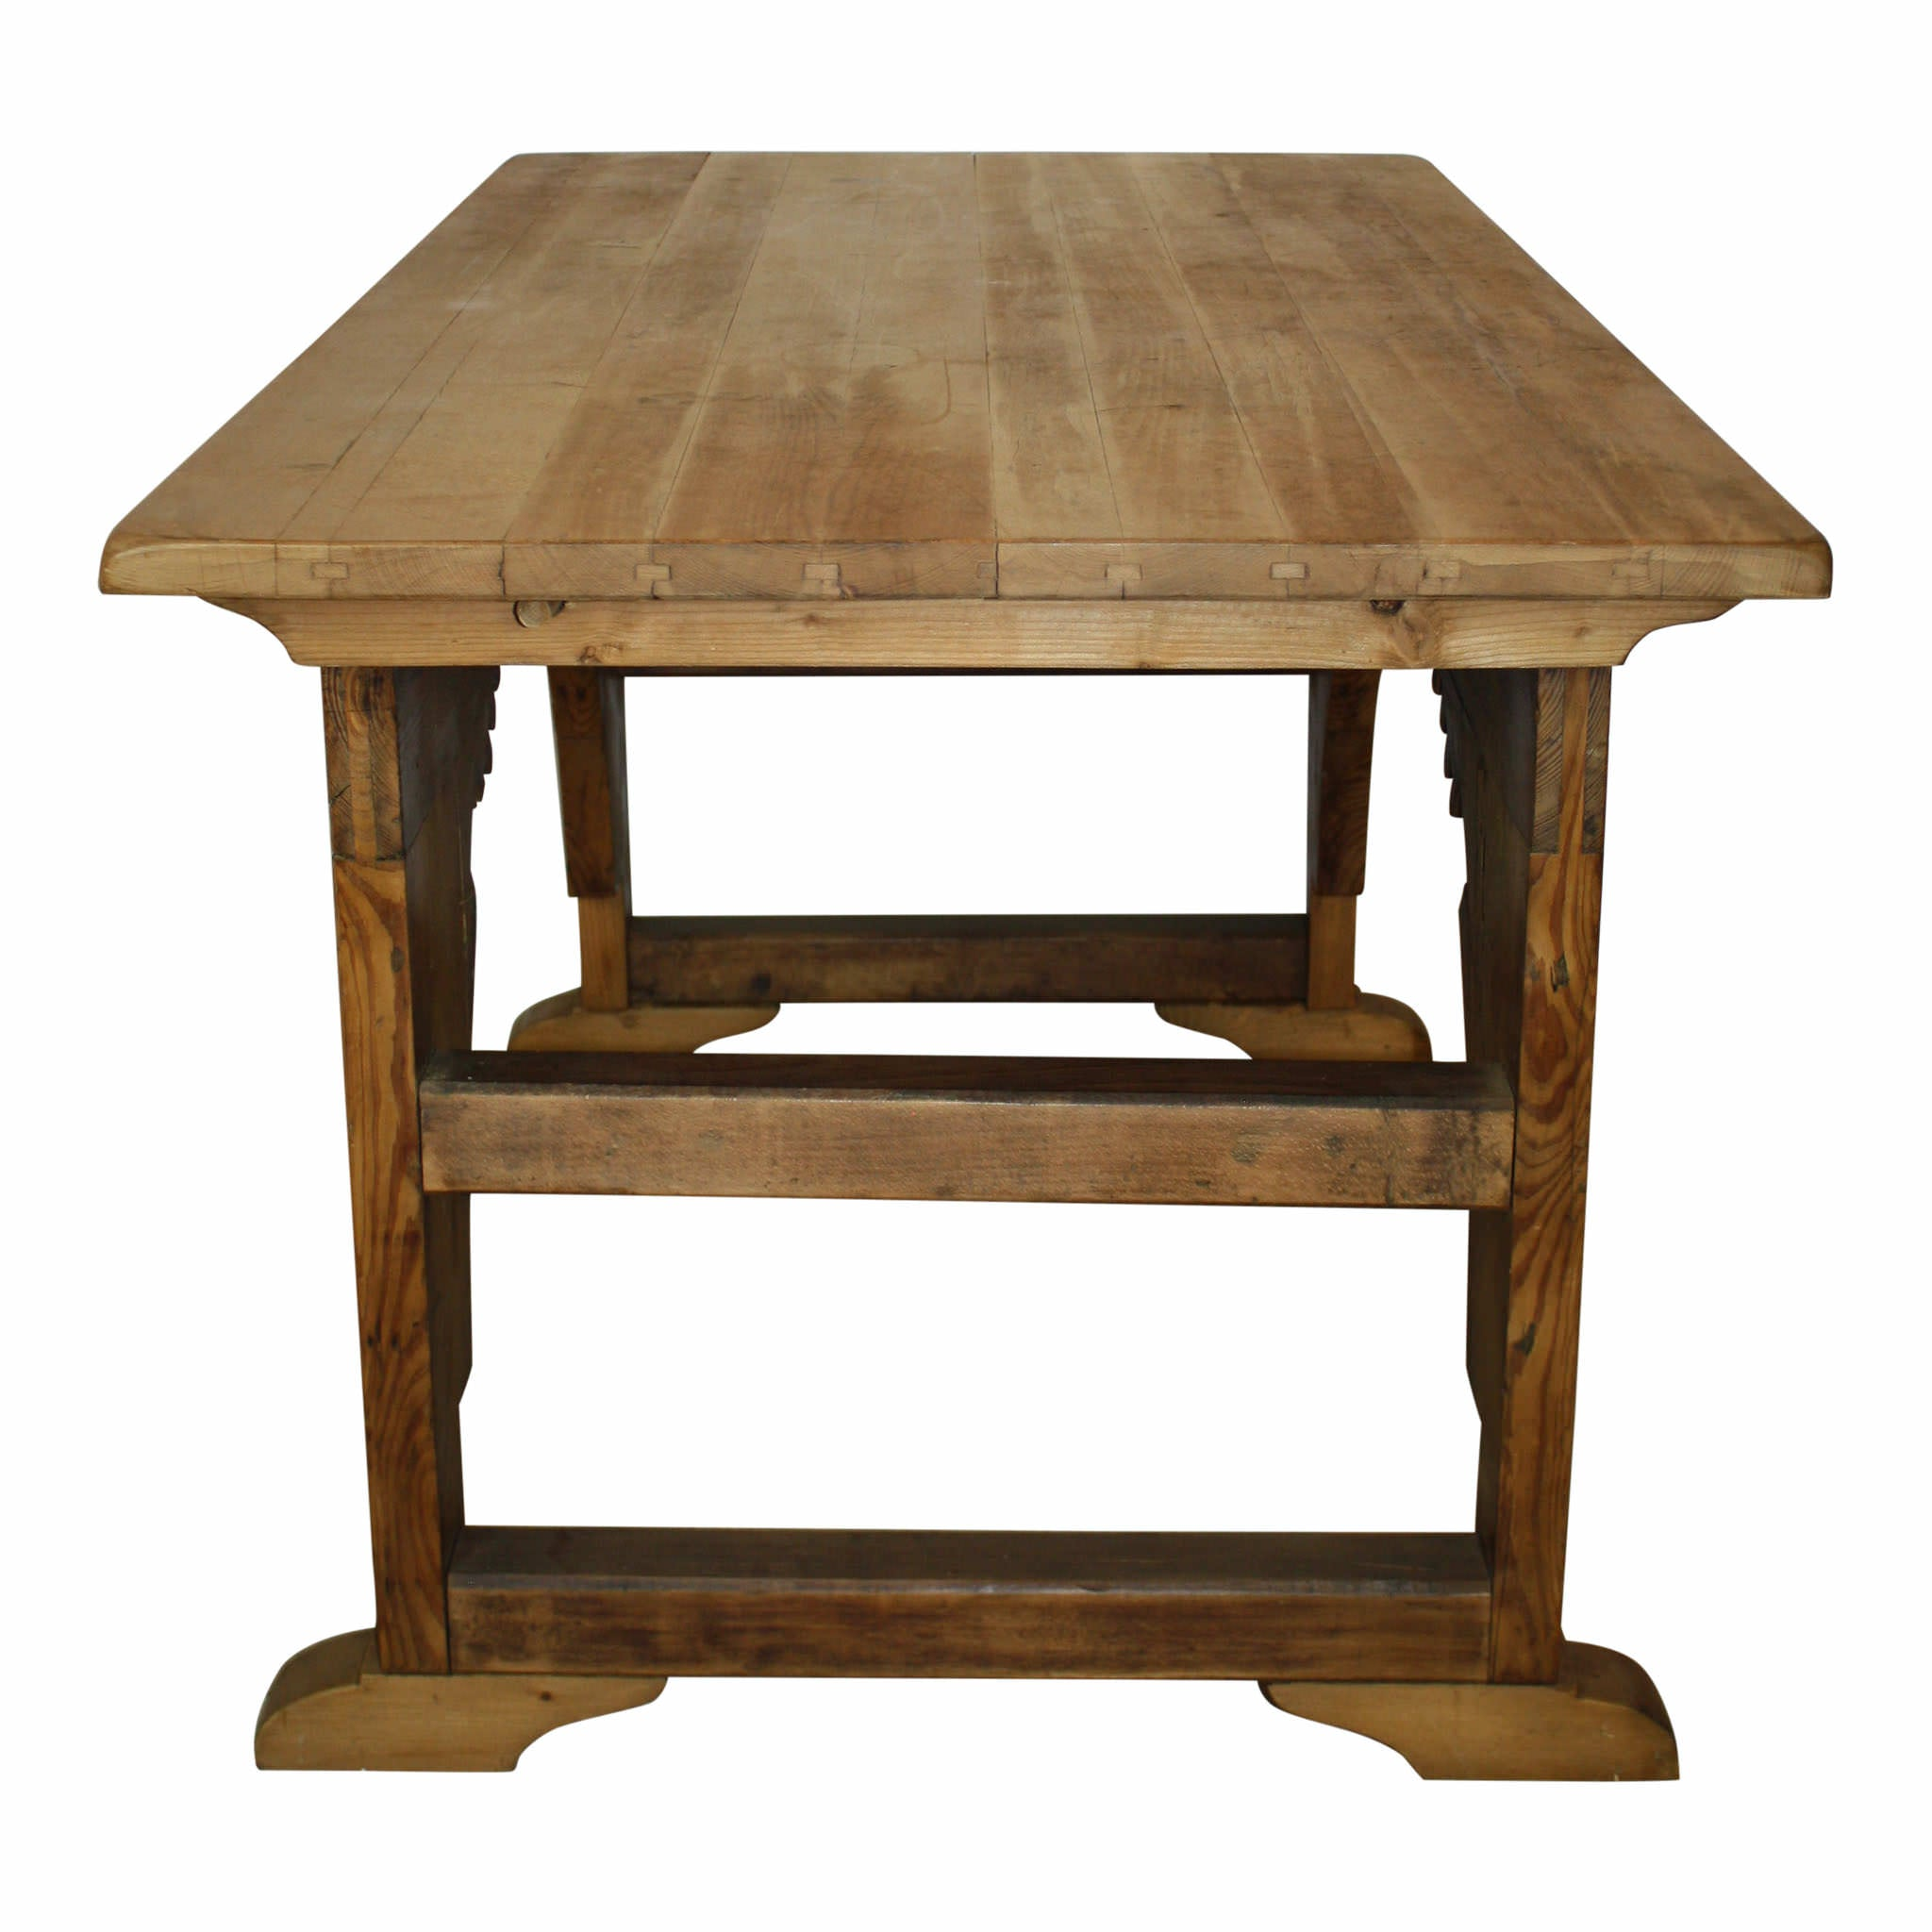 Dutch Pine Miller's Table